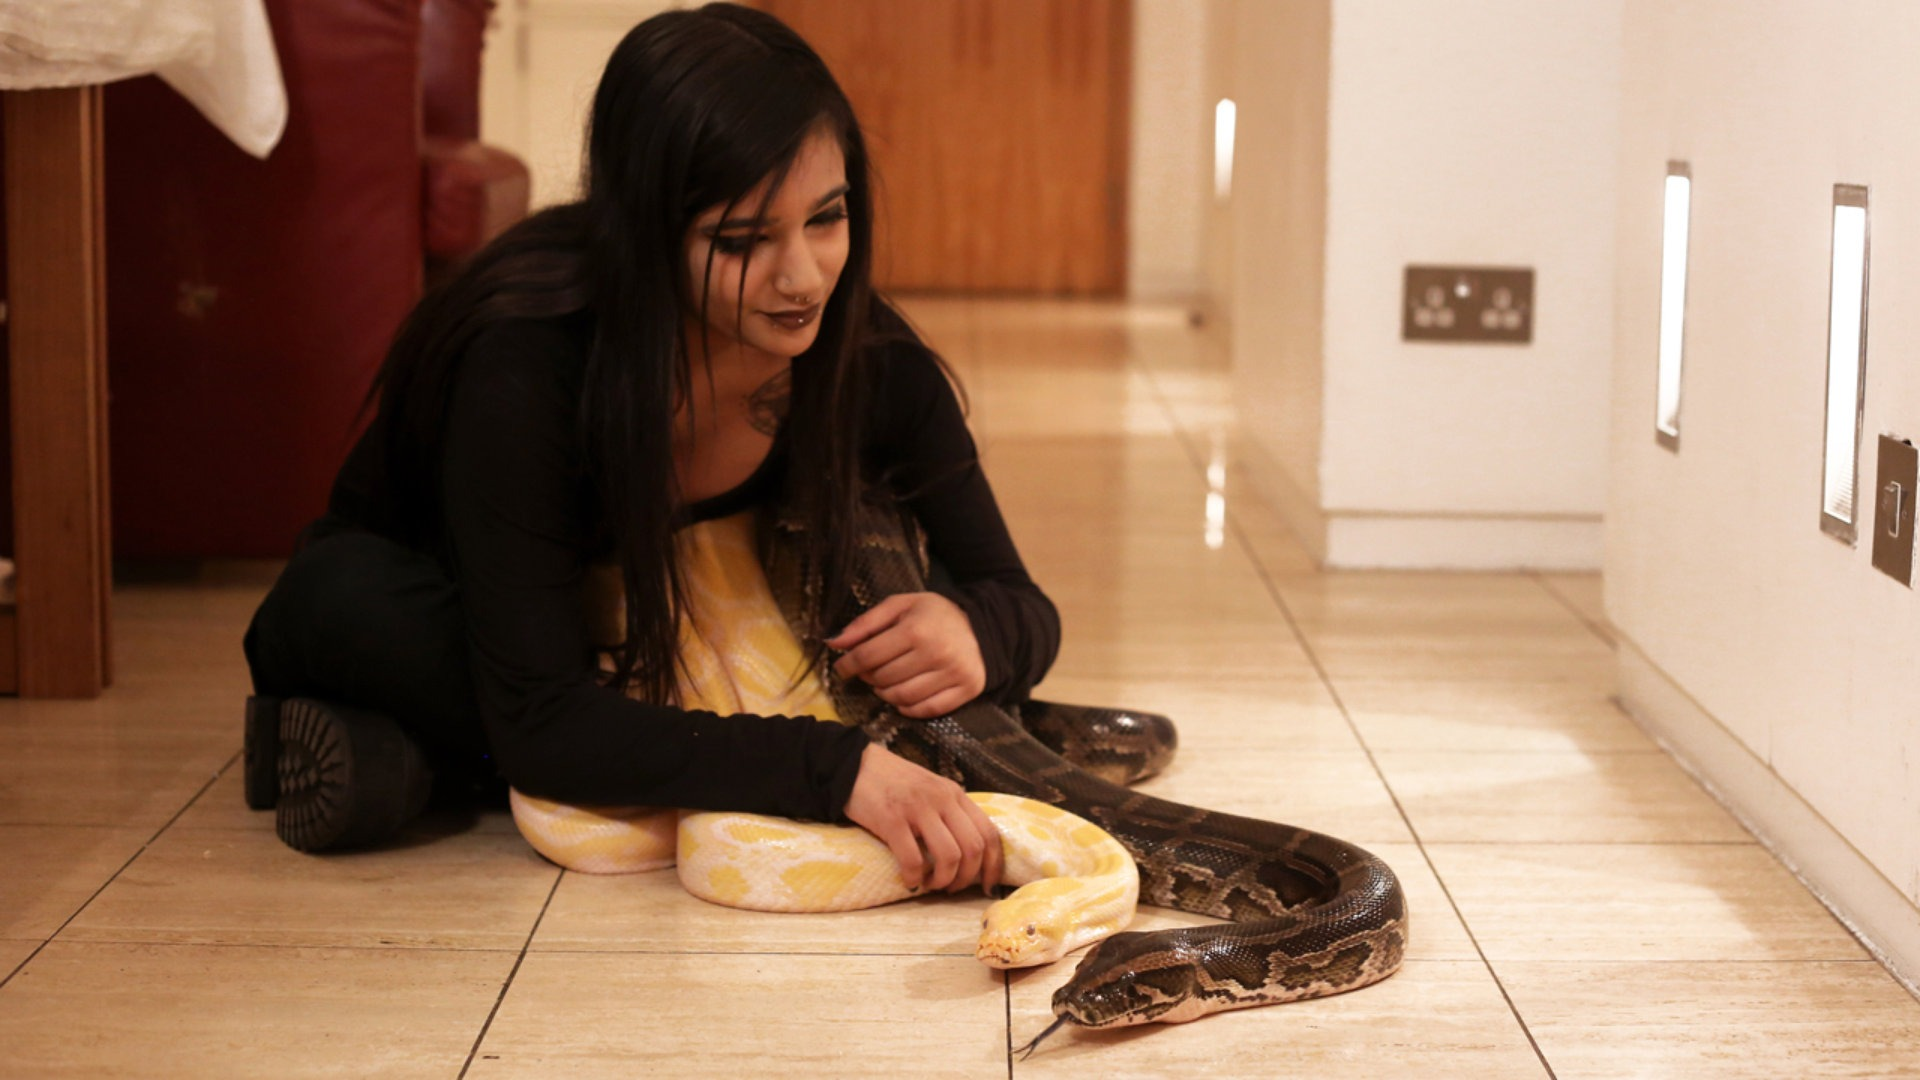 Woman Shares Her Bed With Her 16 ft Python Pet